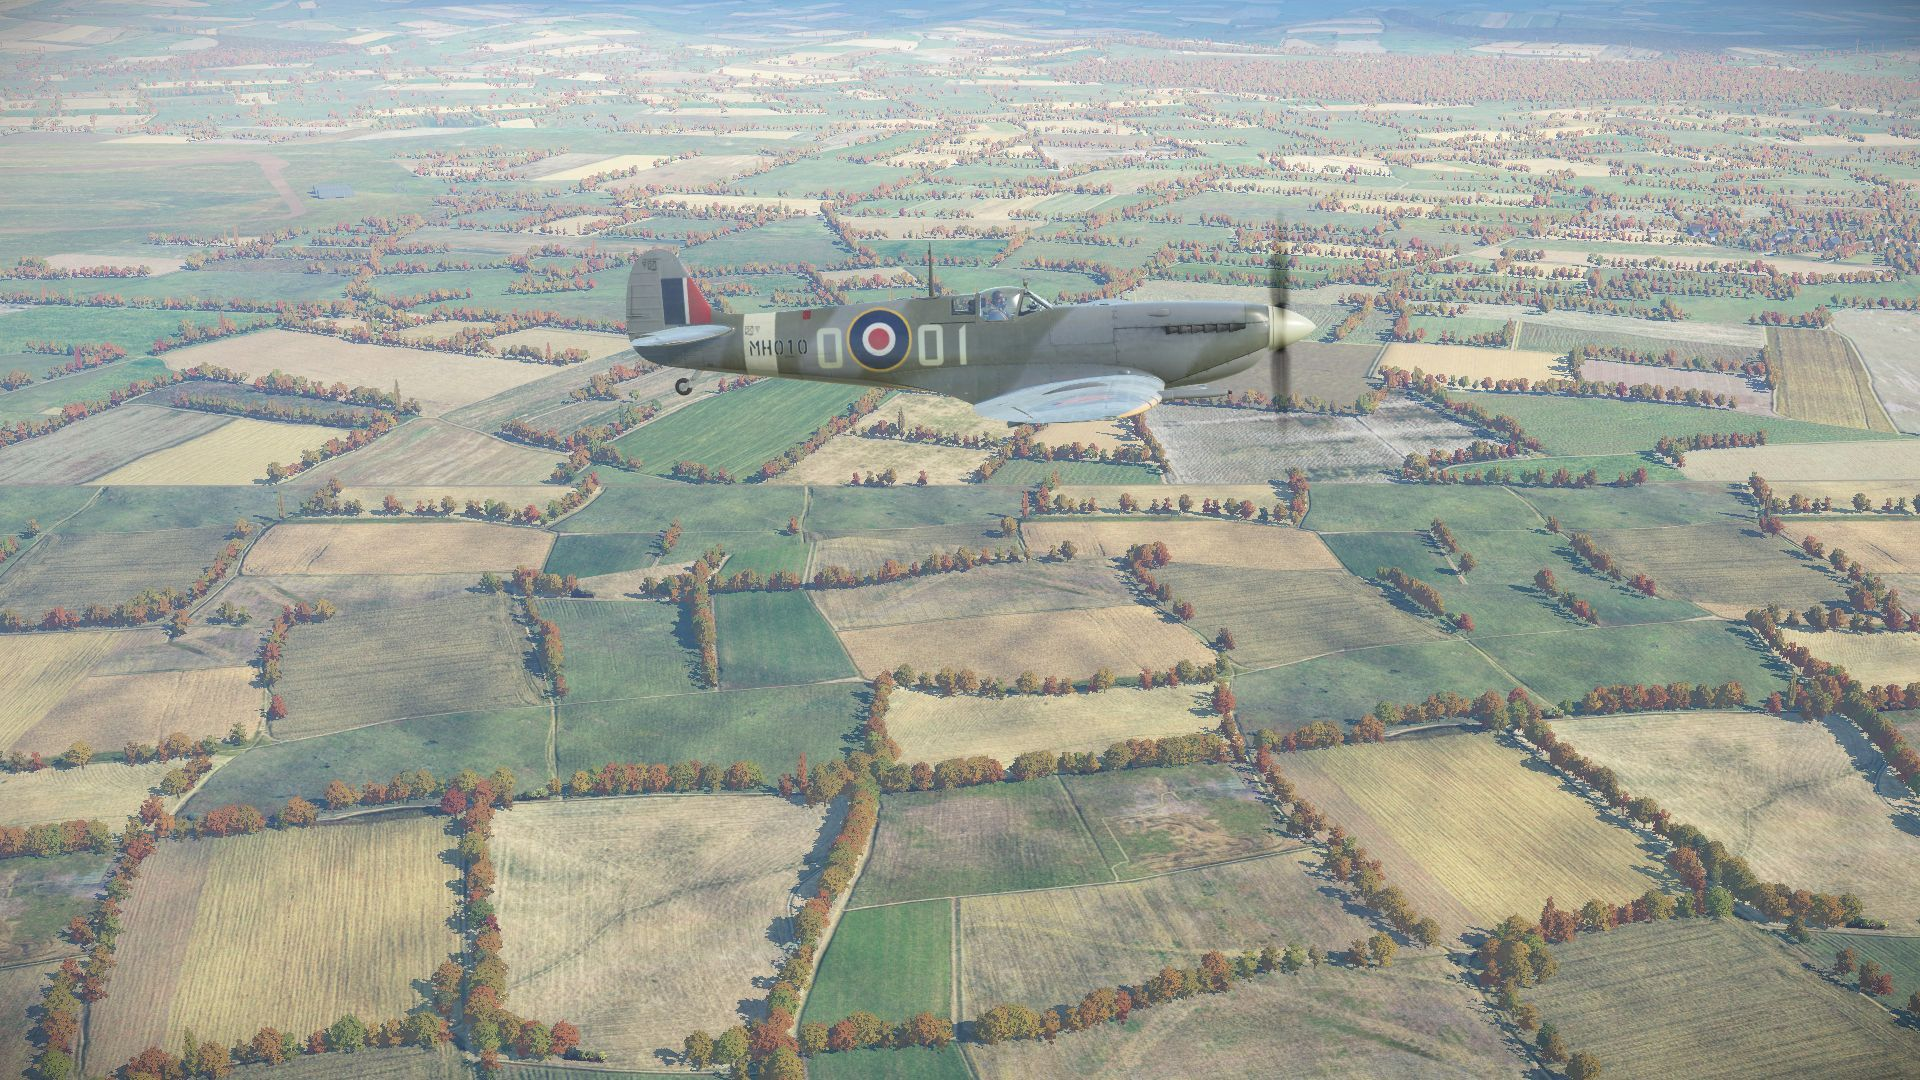 http://www.mudspike.com/wp-content/uploads/2017/04/spitfire_over_the_countryside.jpg